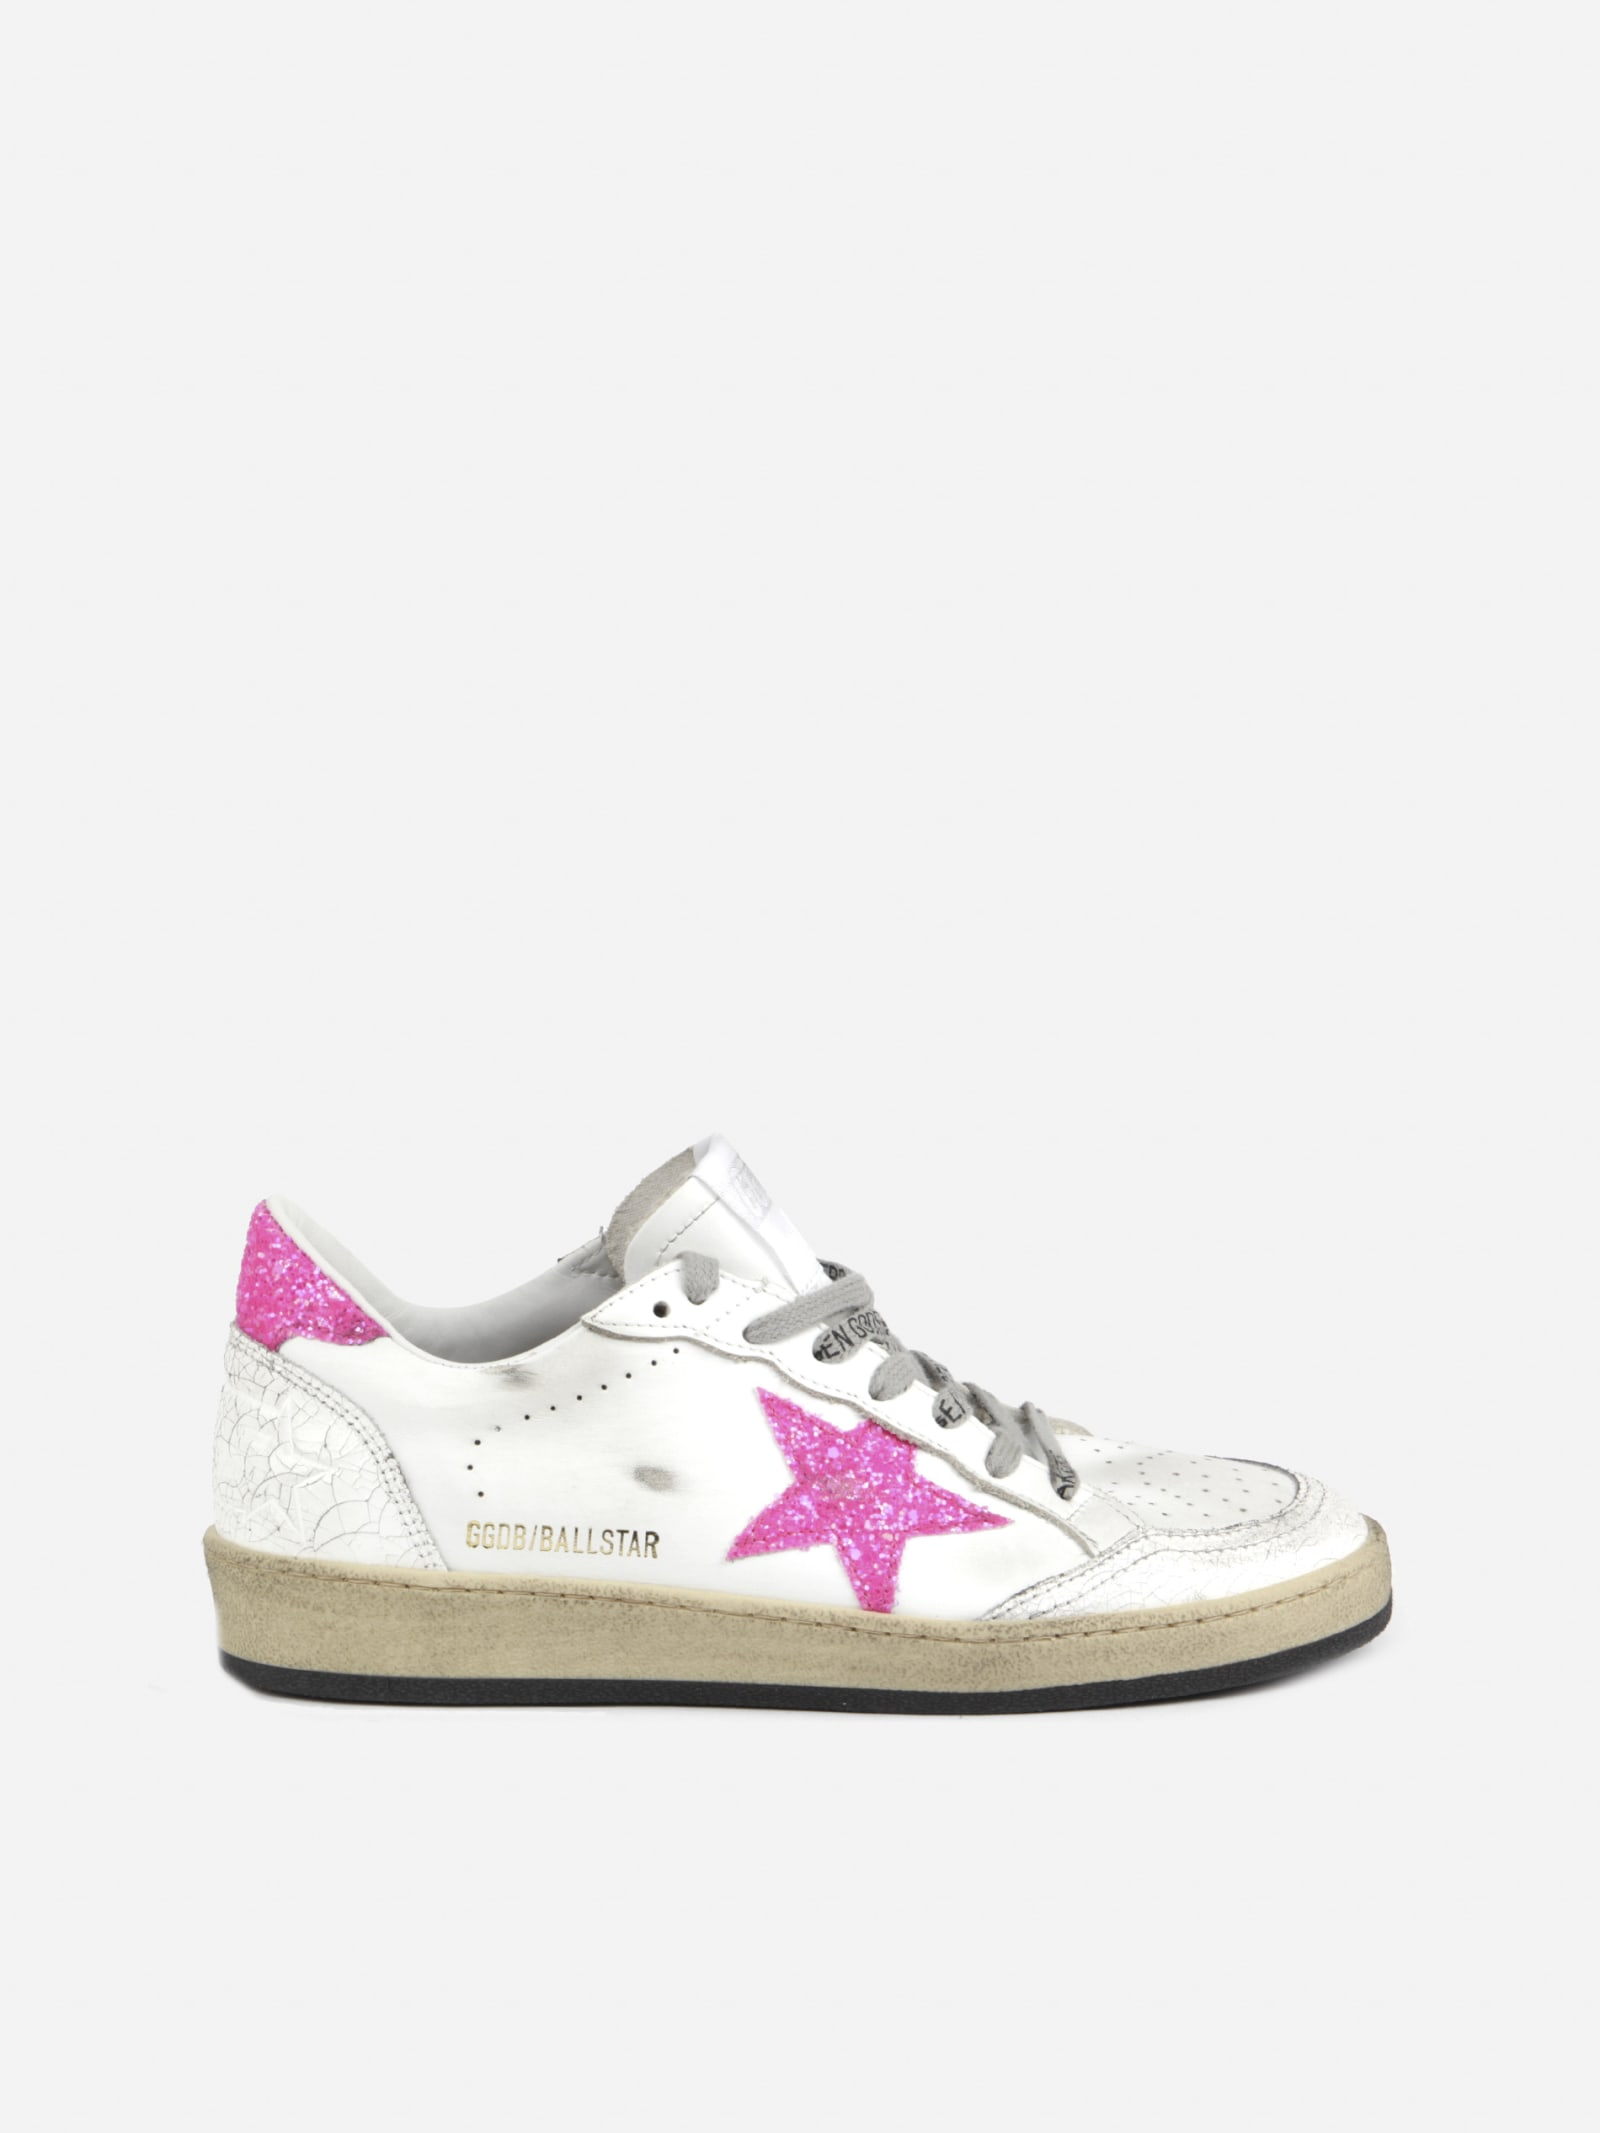 Buy Golden Goose Ball Star Leather Sneaker With Glitter Details online, shop Golden Goose shoes with free shipping